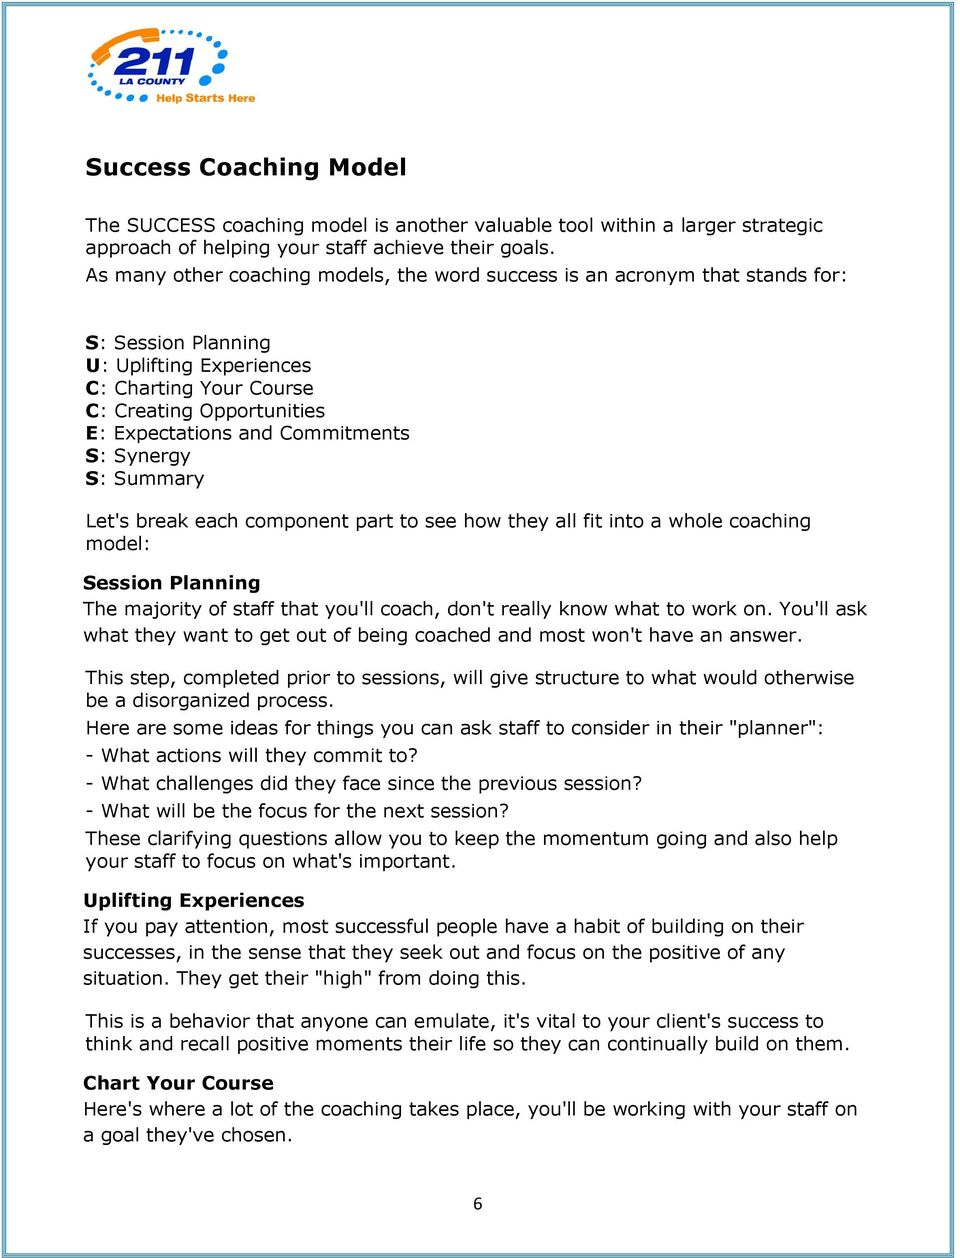 Commitments S: Synergy S: Summary Let's break each component part to see how they all fit into a whole coaching model: Session Planning The majority of staff that you'll coach, don't really know what